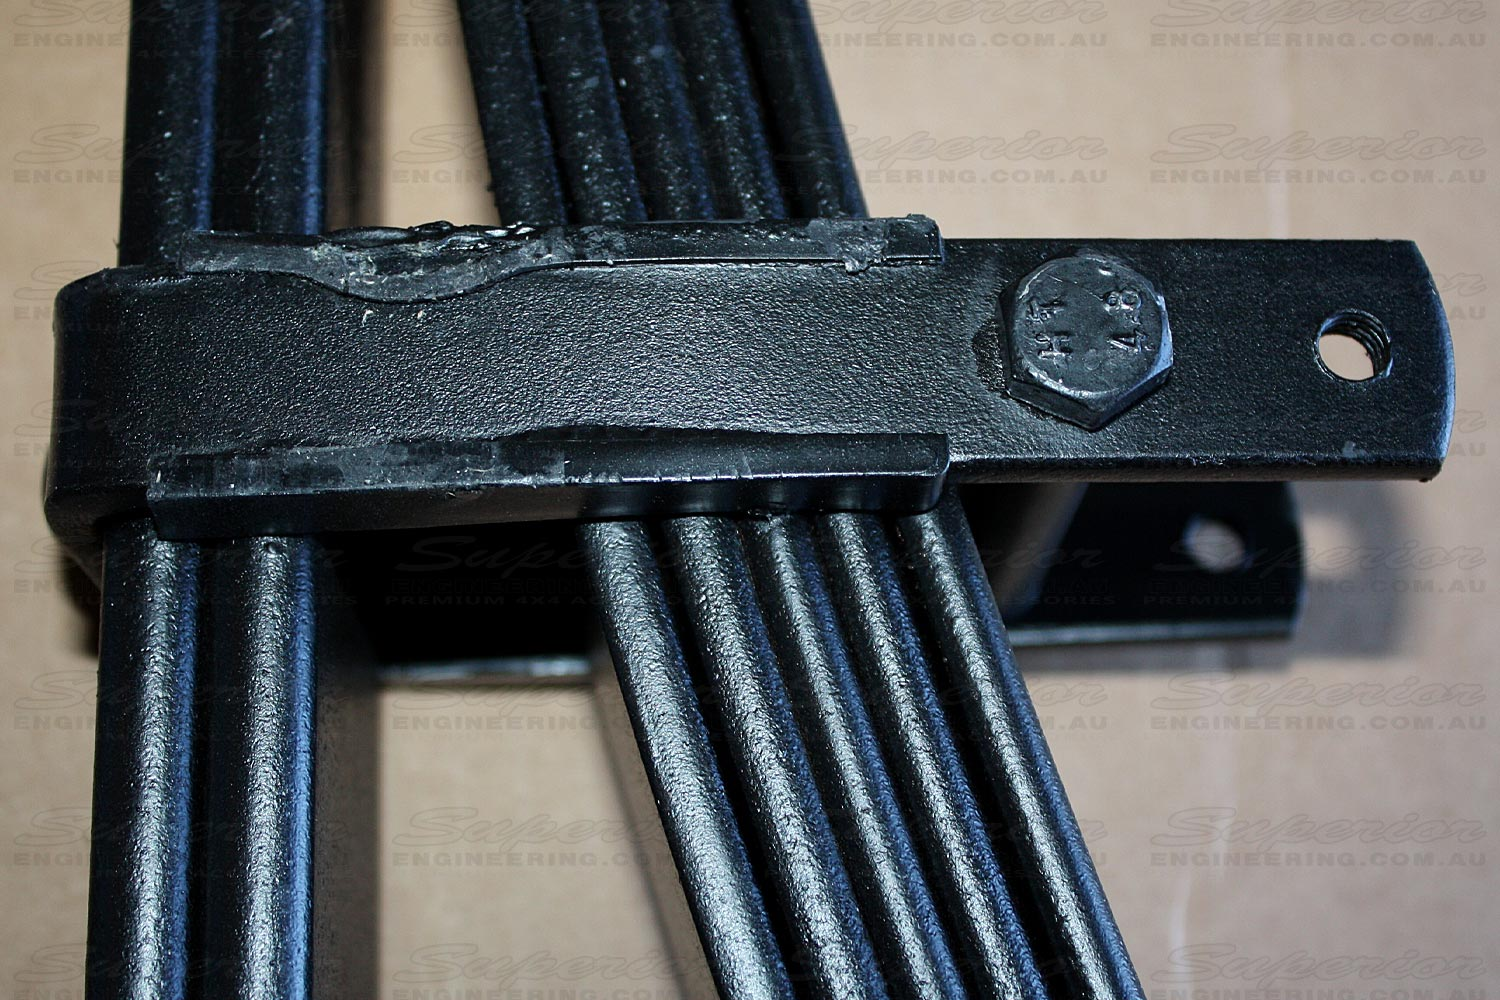 Close up view of the rebound clip of the leaf spring